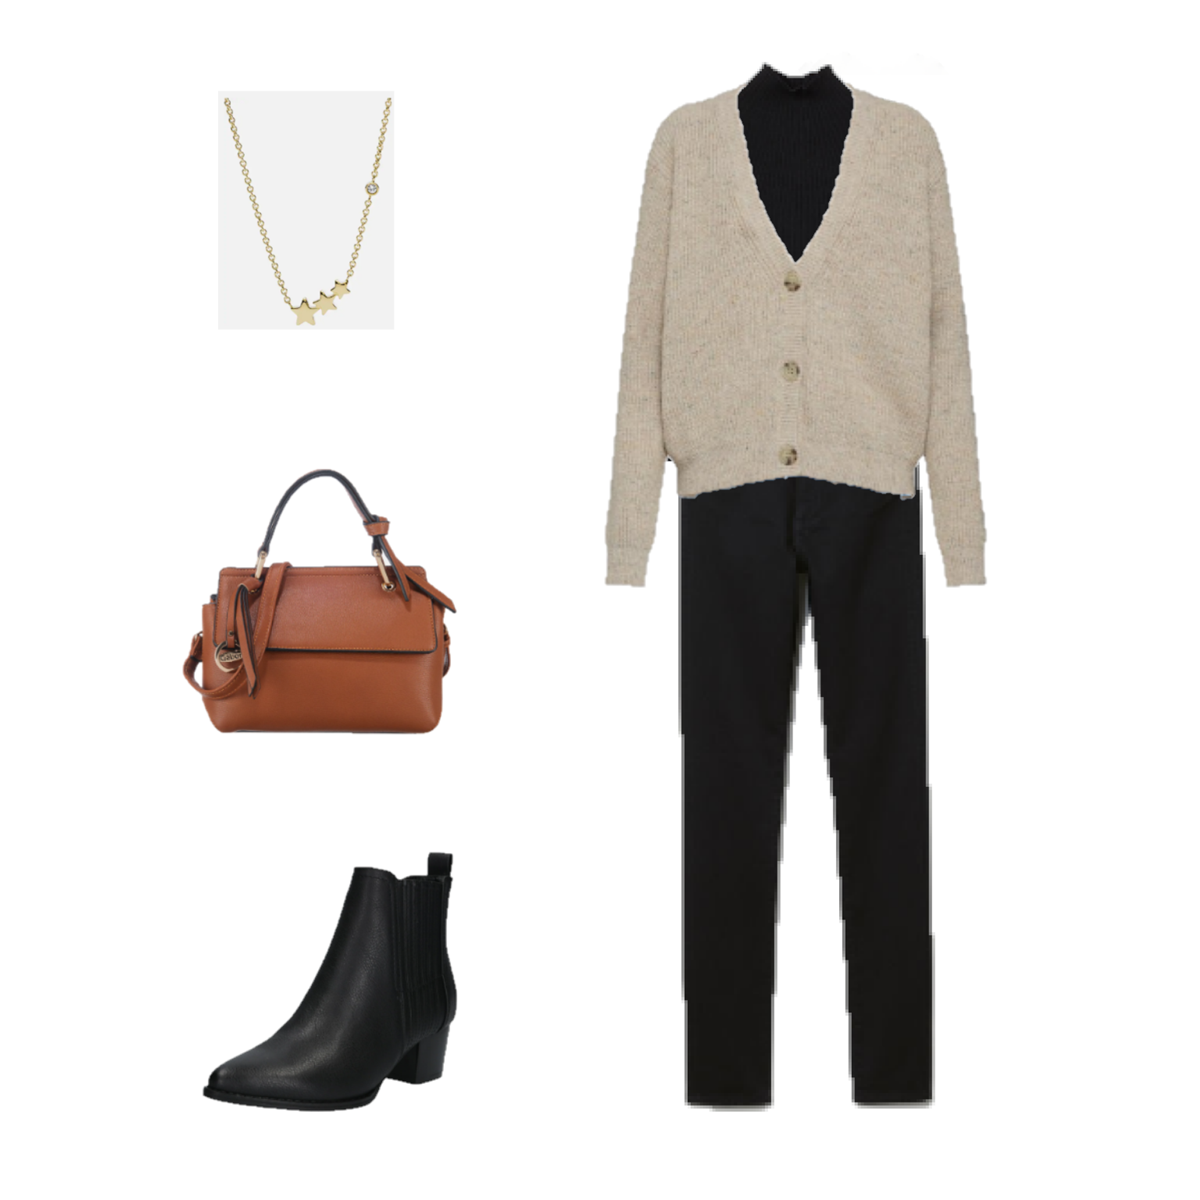 Black turtleneck sweater+black skinny jeans+black ankle-boots+brown handbag+star prendant necklace. Fall Weekday/ Workwear Outfit 2019 #skinnyjeansandankleboots Black turtleneck sweater+black skinny jeans+black ankle-boots+brown handbag+star prendant necklace. Fall Weekday/ Workwear Outfit 2019 #skinnyjeansandankleboots Black turtleneck sweater+black skinny jeans+black ankle-boots+brown handbag+star prendant necklace. Fall Weekday/ Workwear Outfit 2019 #skinnyjeansandankleboots Black turtleneck #skinnyjeansandankleboots